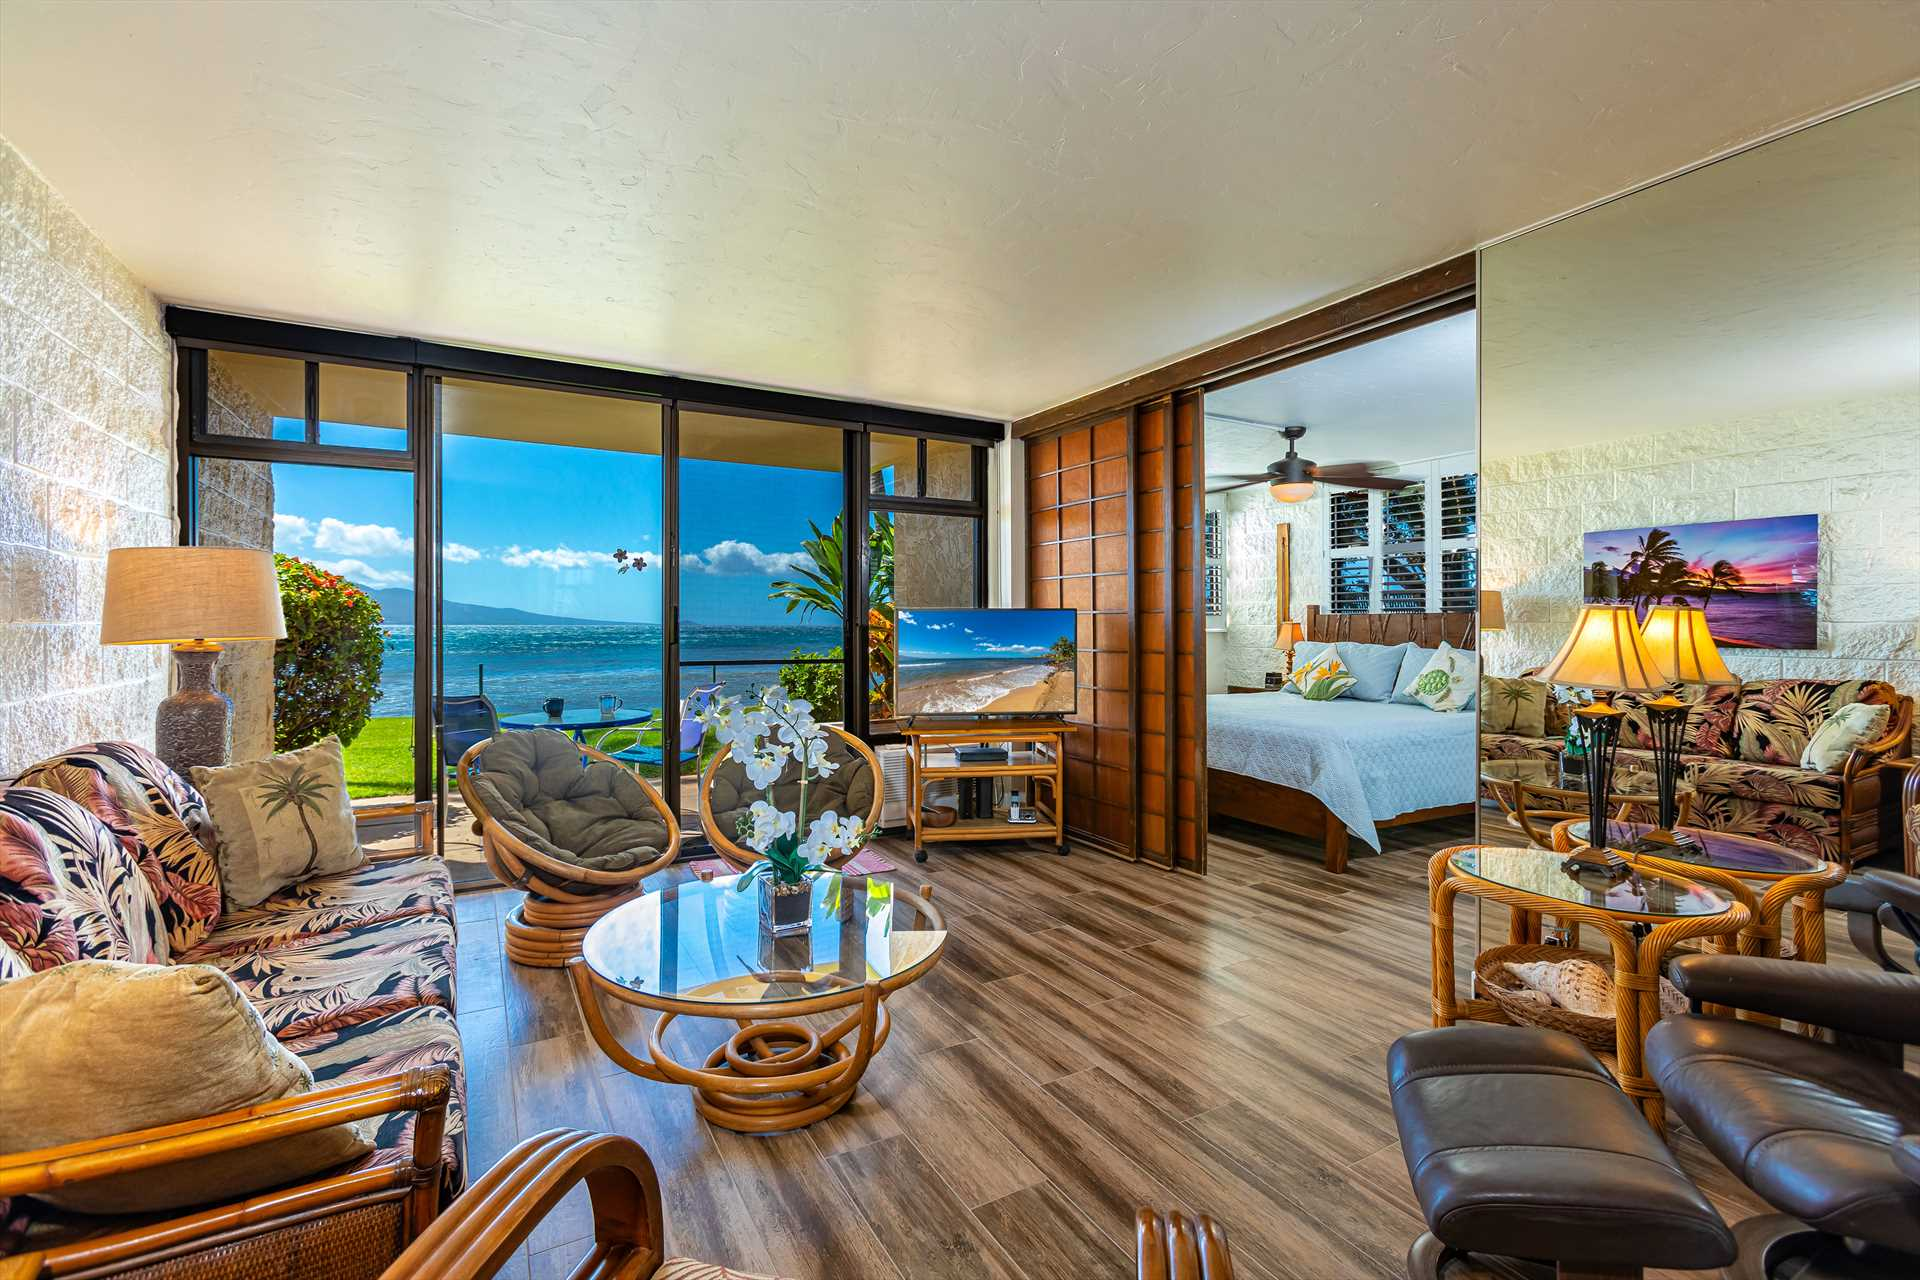 Living room with such a great view